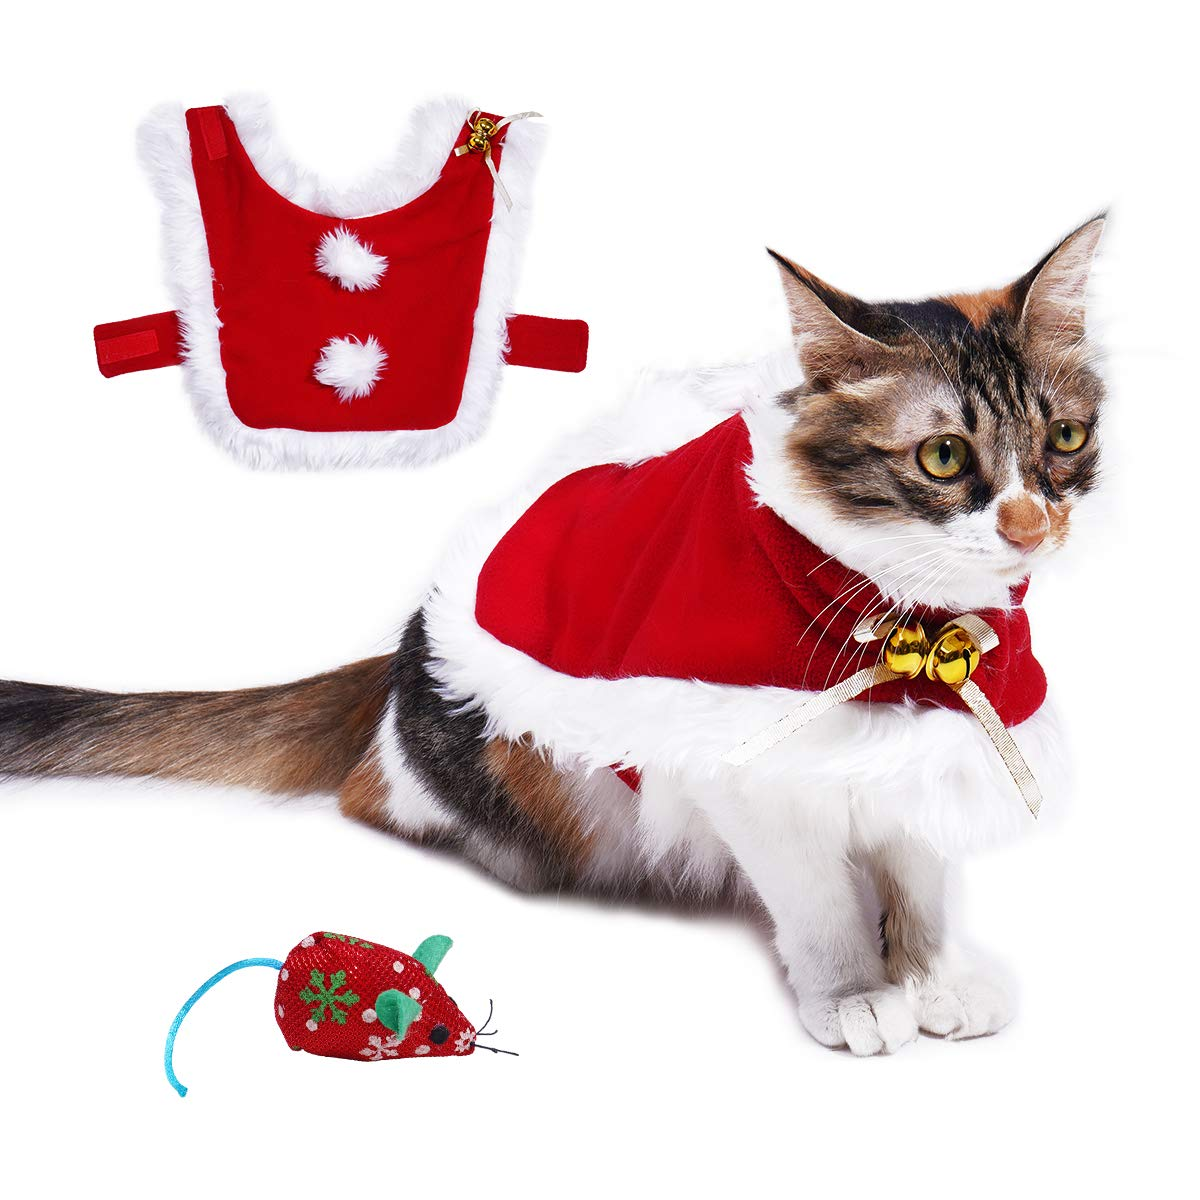 Cat Christmas Costume, Adjustable Pet Cat Santa Clothes Cloak with Bells, Puppy and Cat Xmas Claus Costumes Apparel Party Clothing Cape for Small Dogs and Cats Cosplay, Free Cat Mouse Toy Included Red) Vikedi